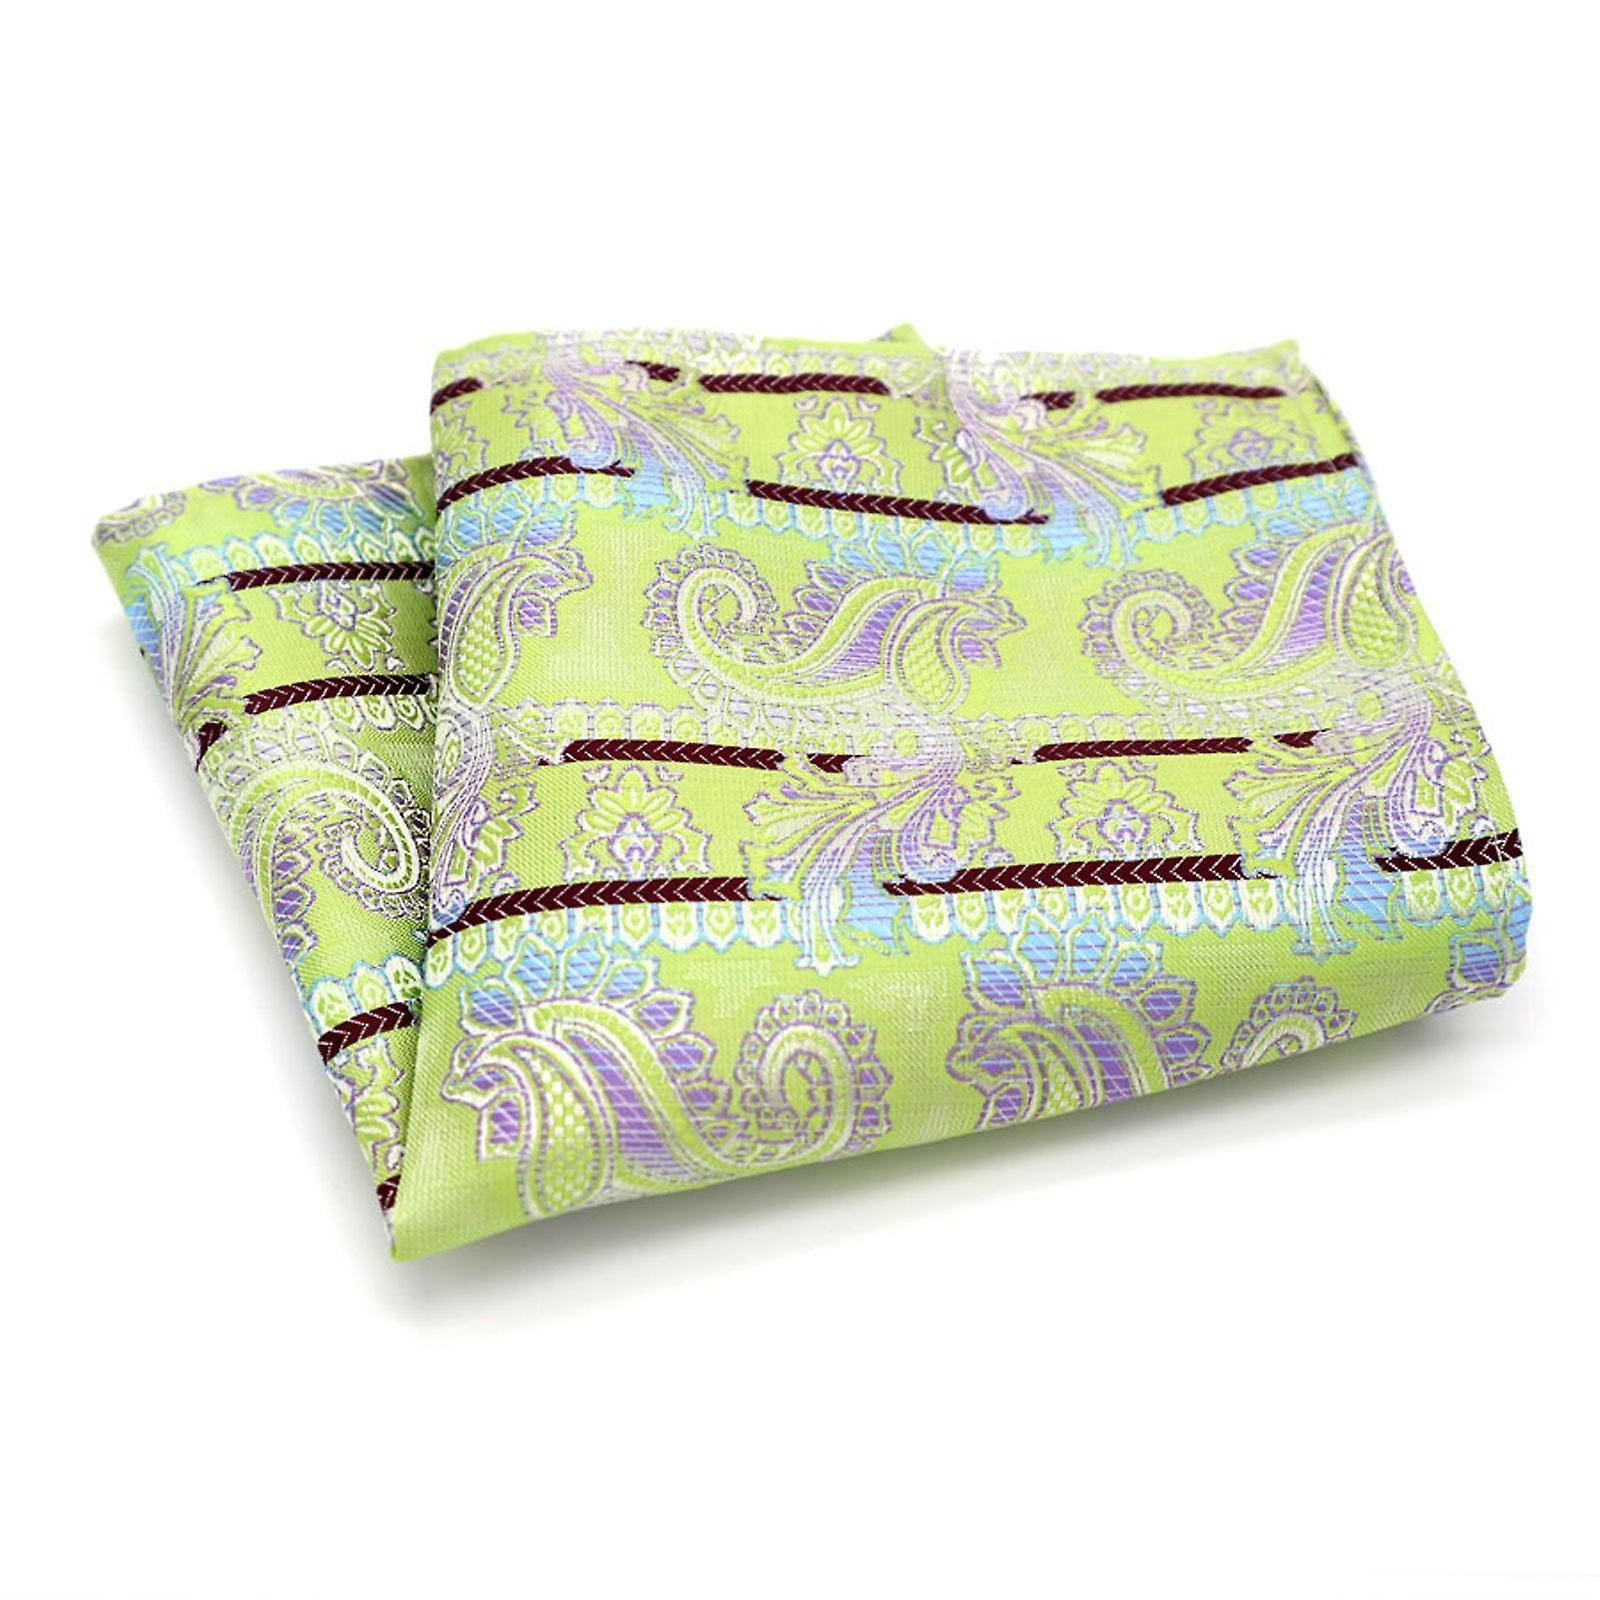 Mint green & purple designer paisley pocket square